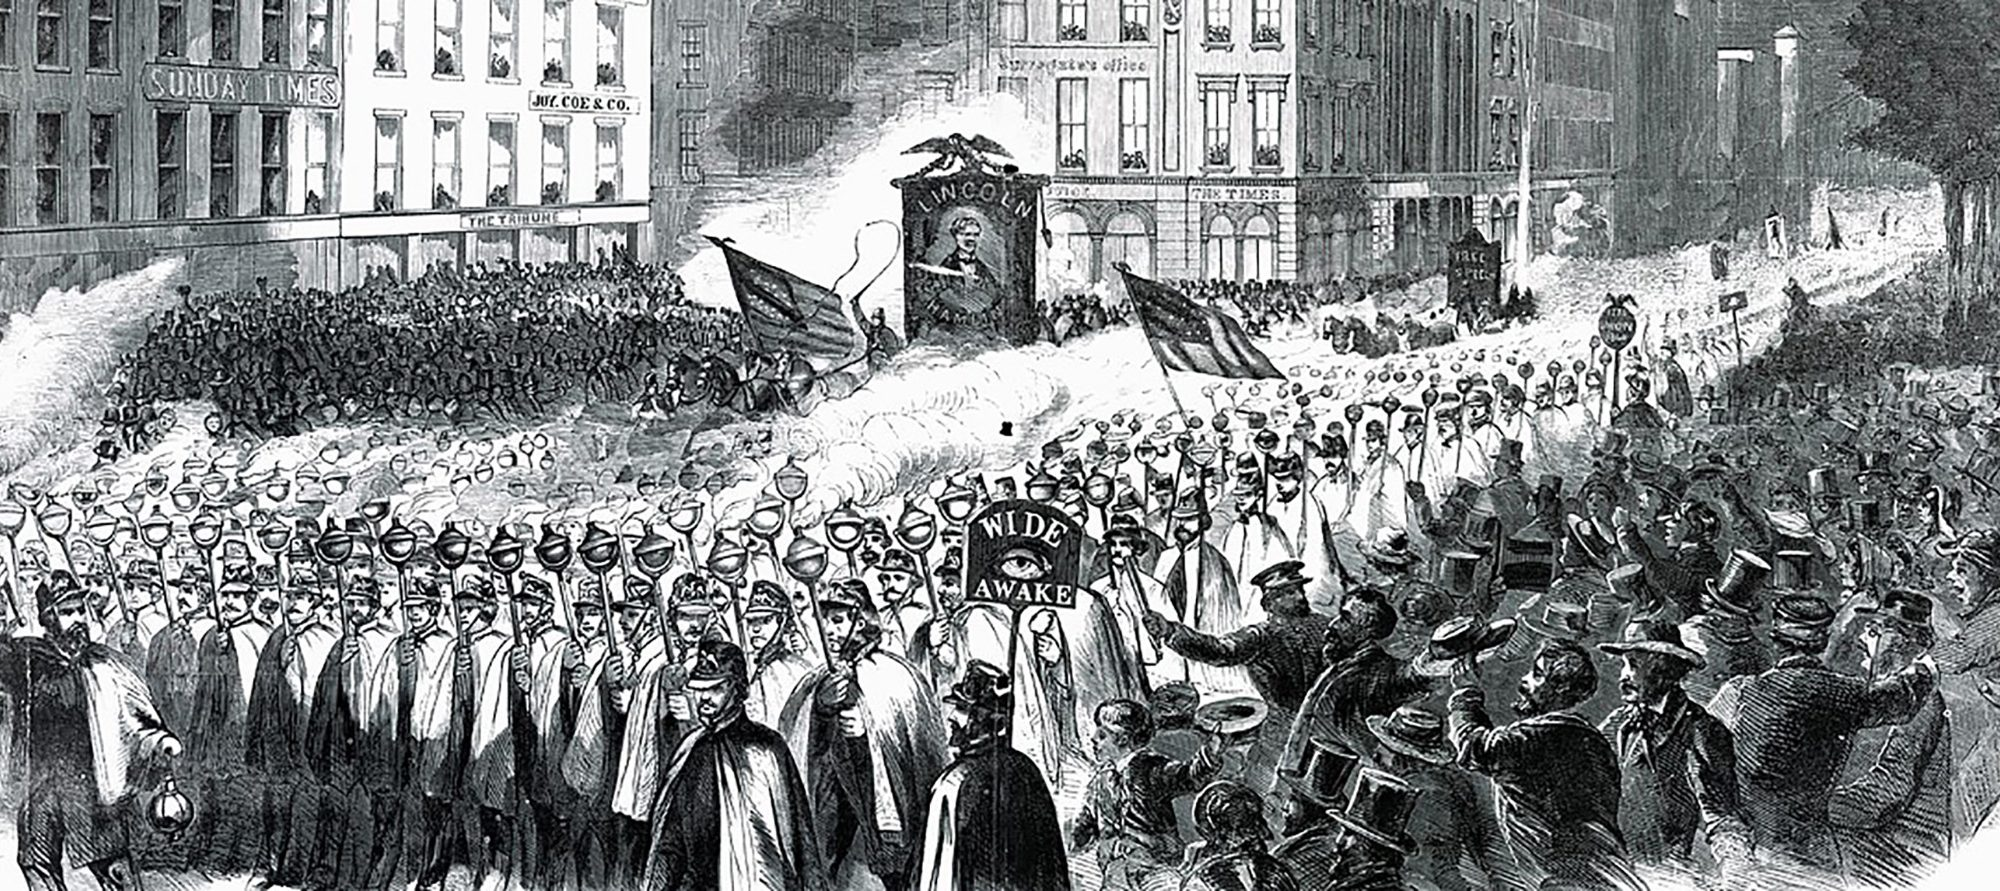 Illustration depicting a procession of Wide Awakes on the streets of New York